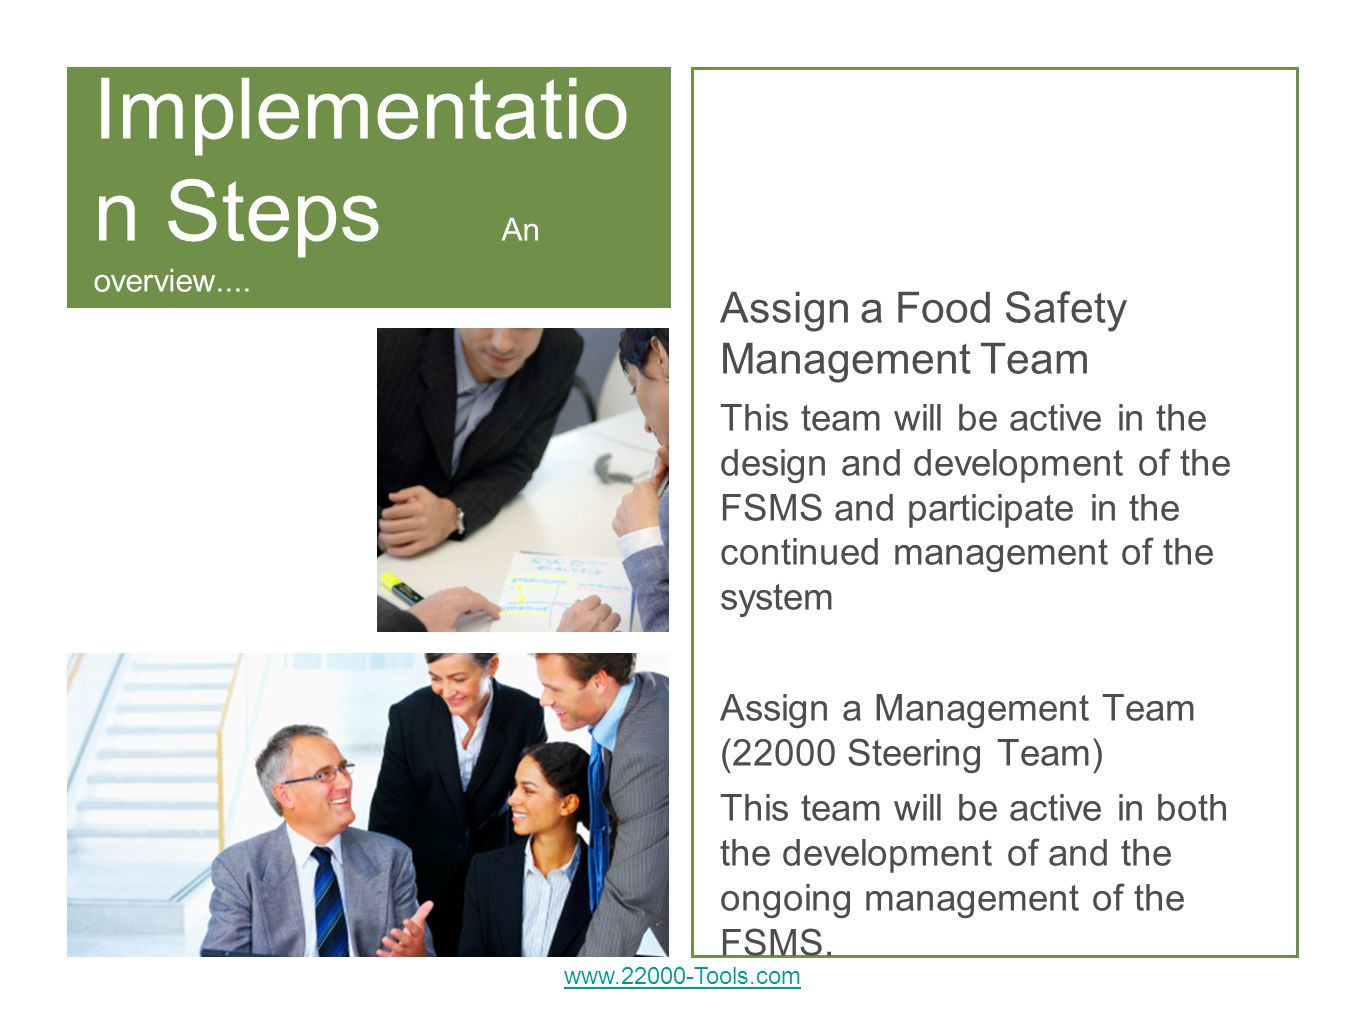 Implementatio n Steps An overview....